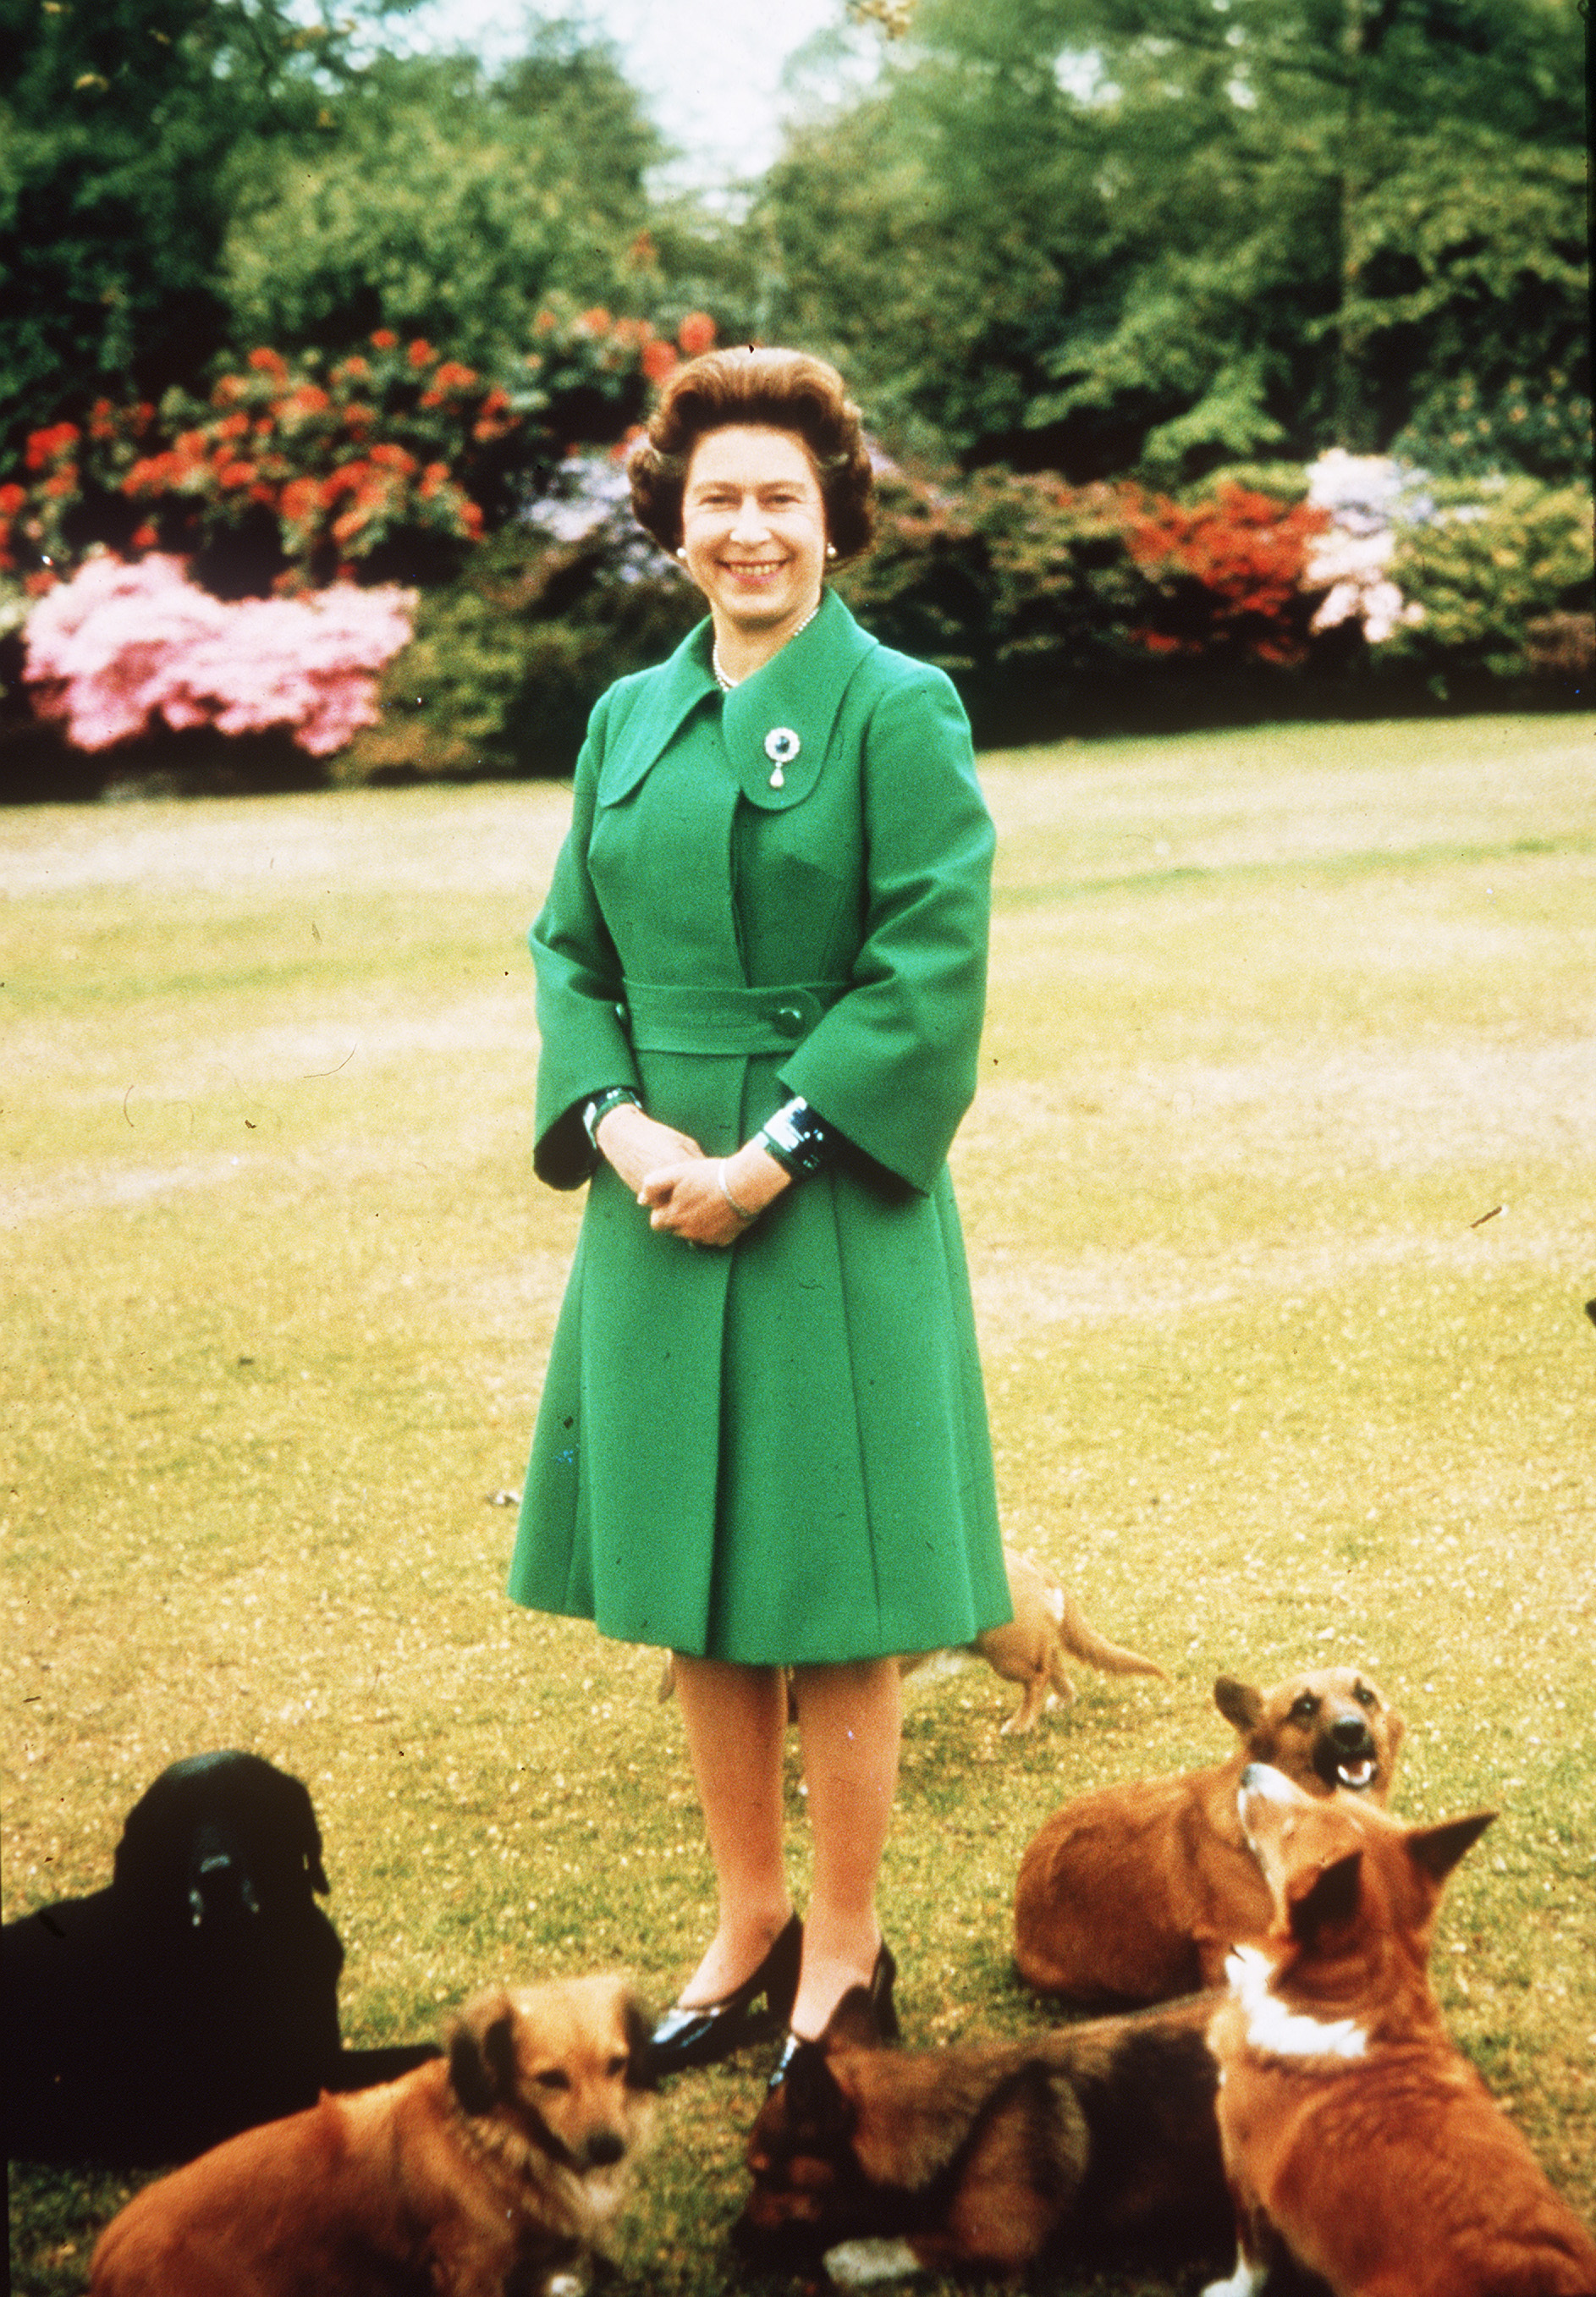 Queen and corgis